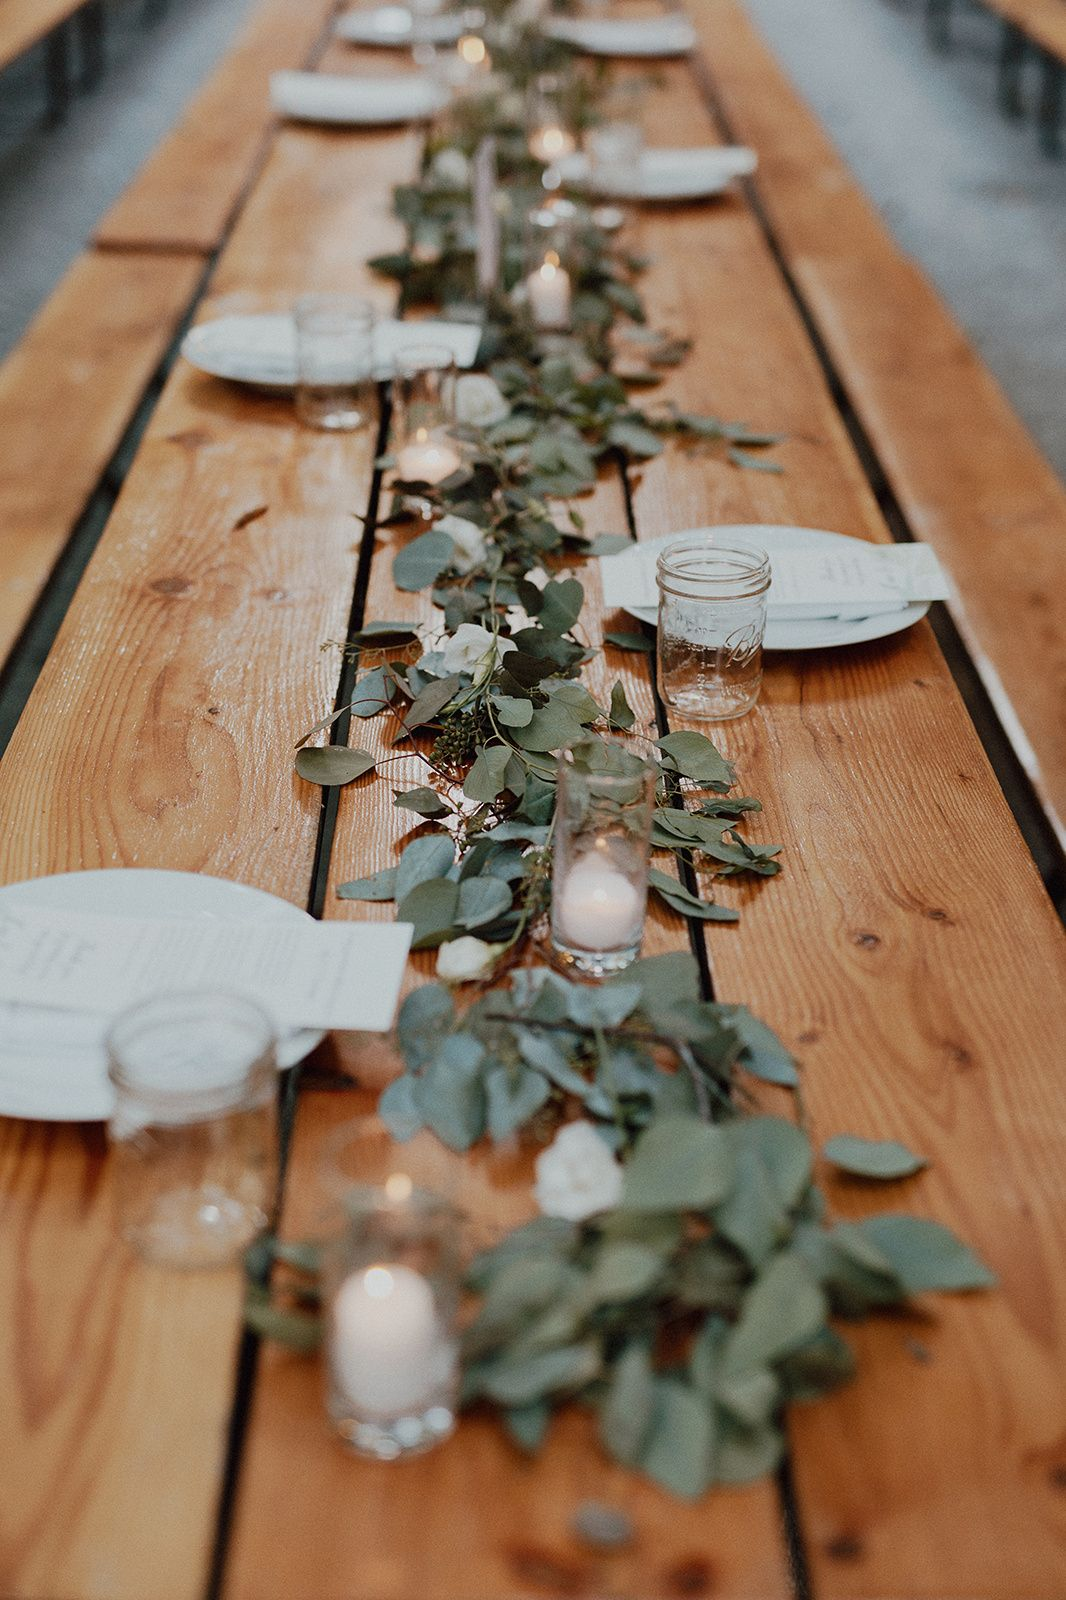 Loose Greenery To Create A Garland Effect On Wood Picnic Table With White Accent Flowers Ru Wedding Picnic Table Decor Picnic Table Wedding Picnic Table Decor